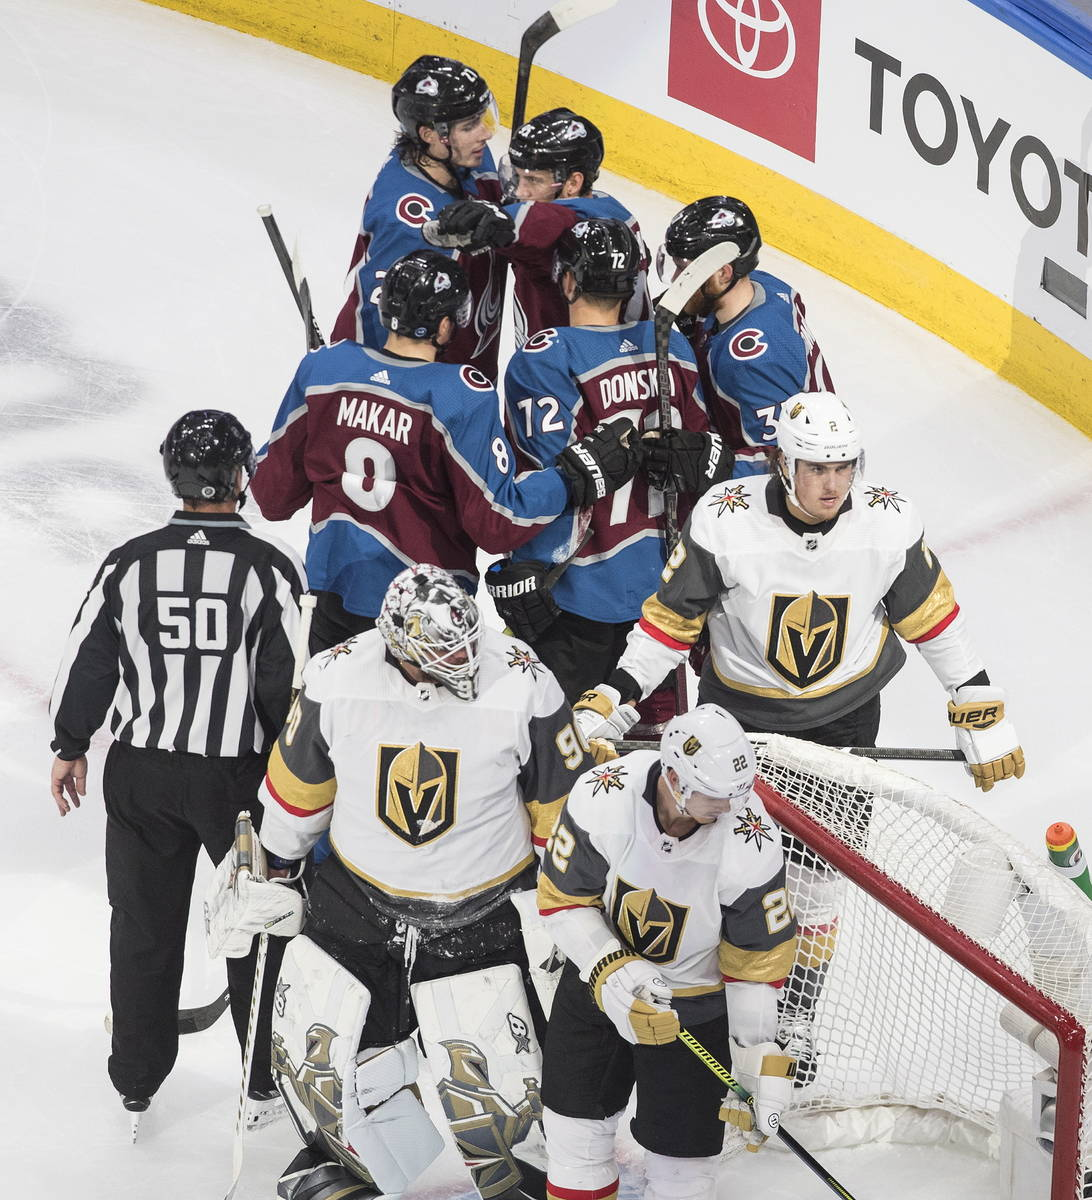 Colorado Avalanche players, rear, celebrate a goal during the second period of an NHL hockey qu ...